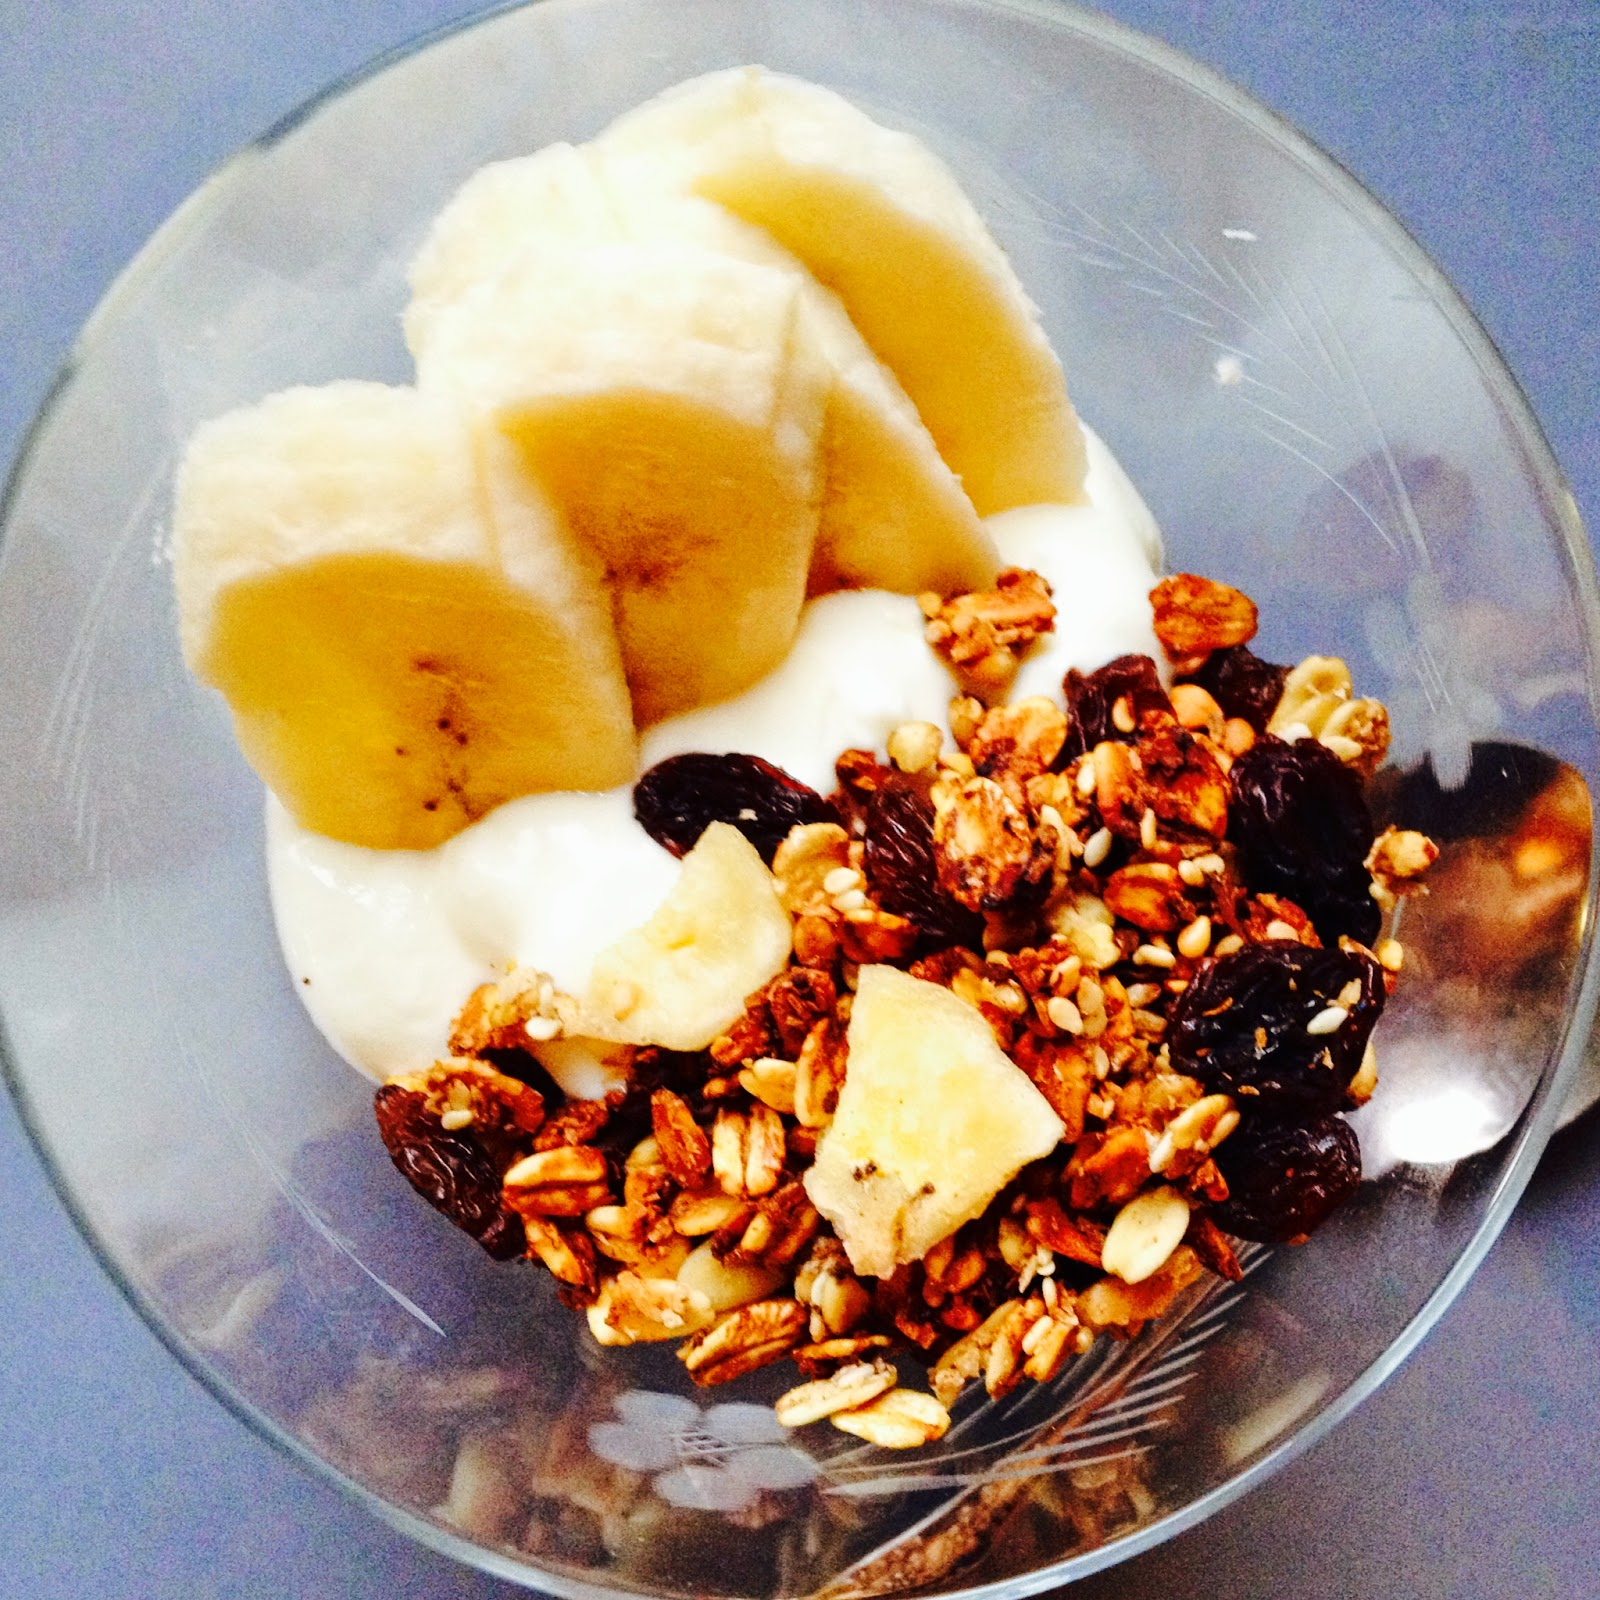 How To Make Banana Granola Credit: Lucy Corry/The Kitchenmaid